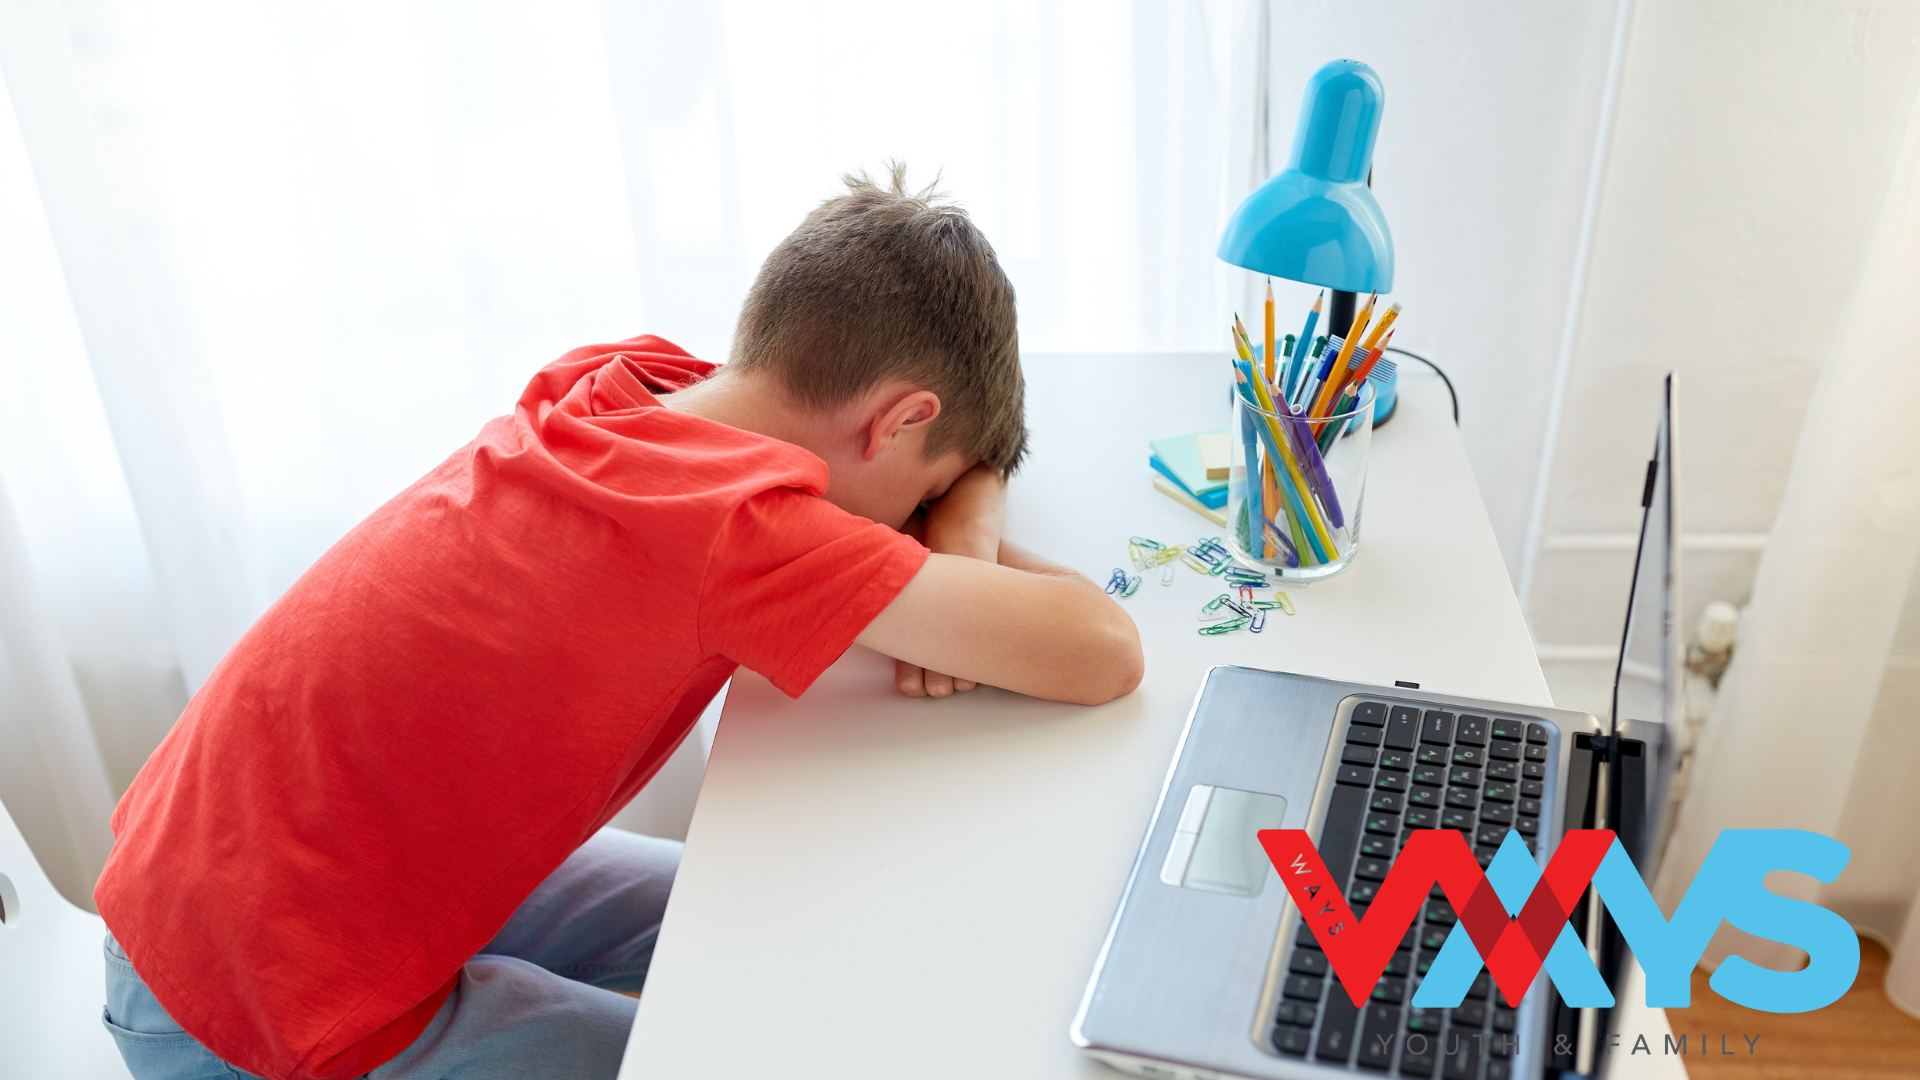 What signs that your child is being cyberbullied?